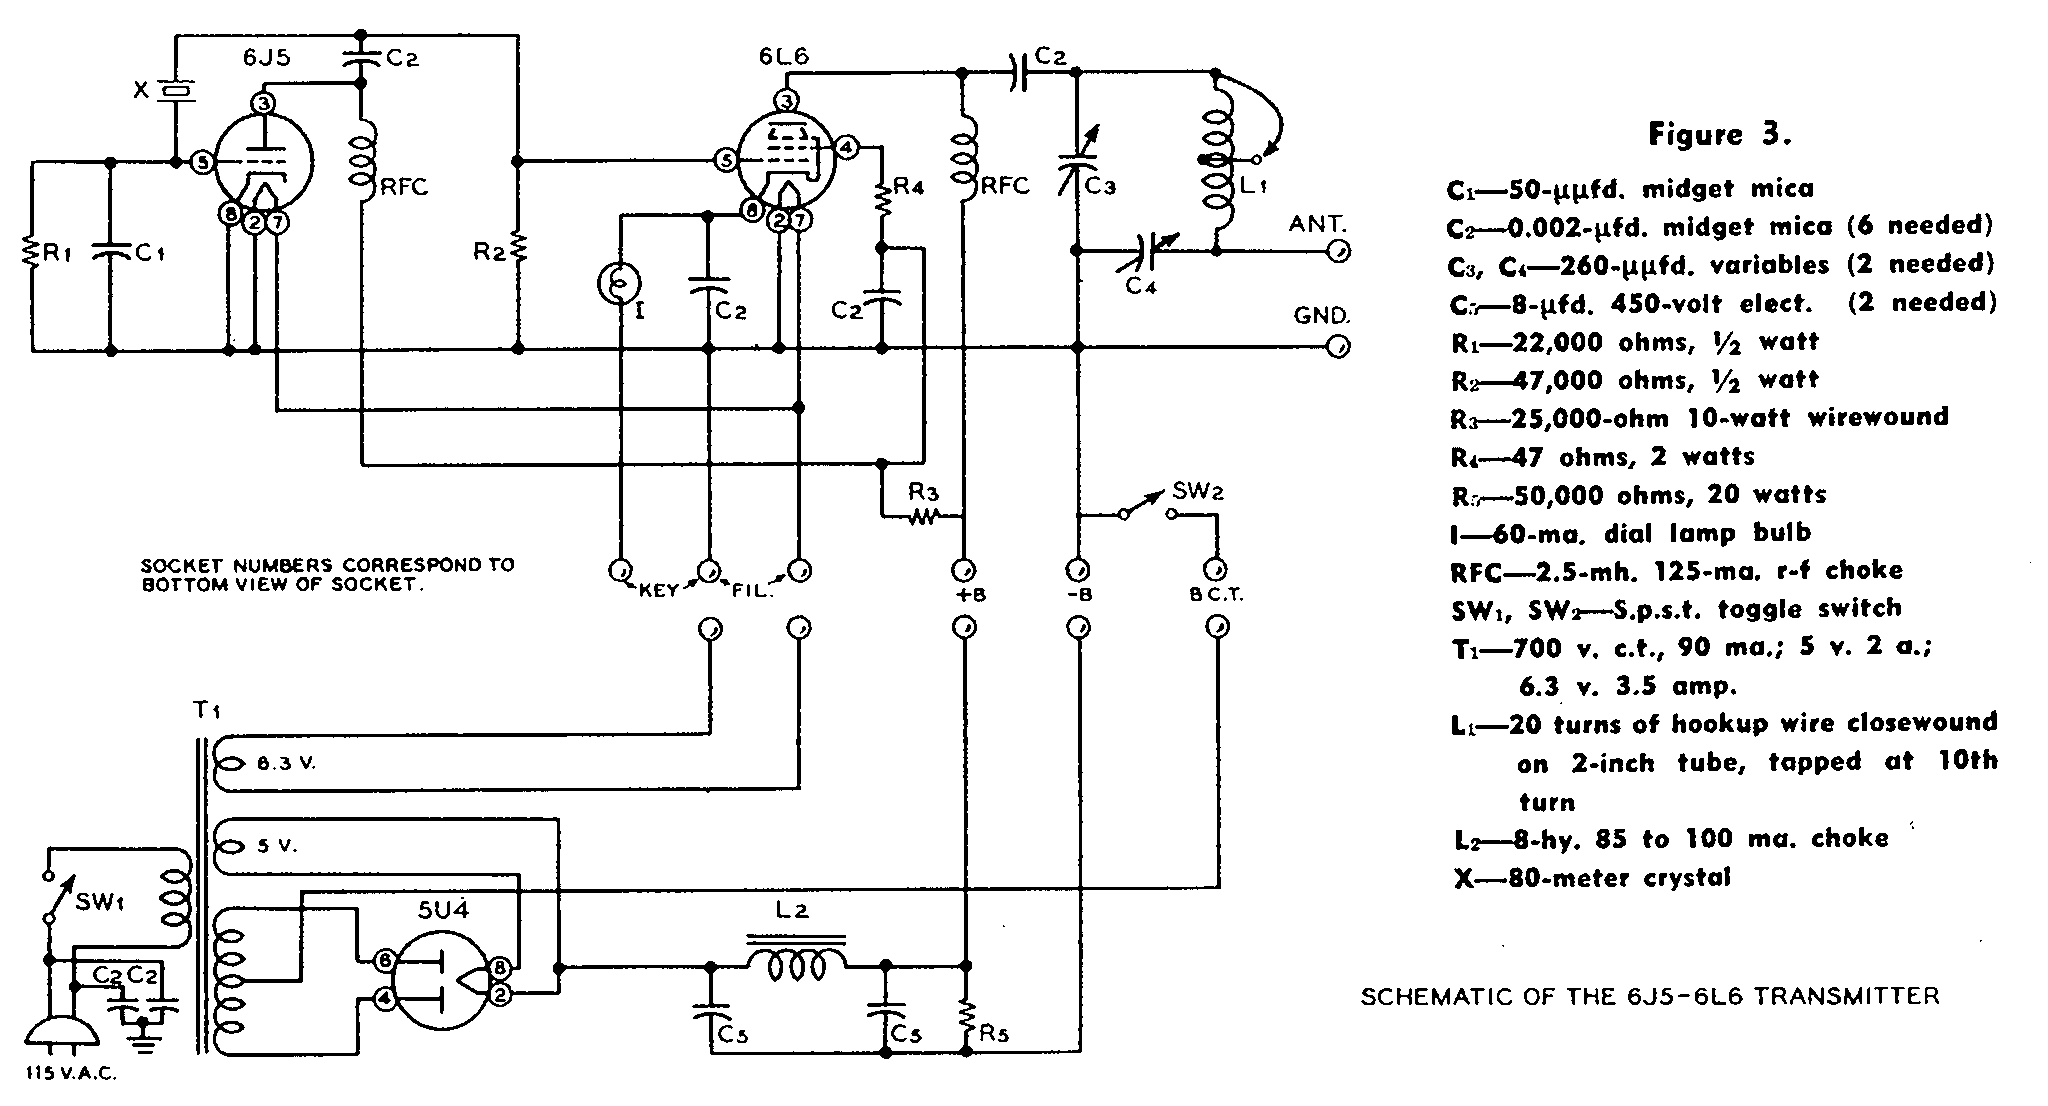 David Newkirk Writings Enjoying Radio Seventy Five Years Of The 64 Et Wiring Diagram Boosted Pierce Transmitter Schematic From Page 288 1947 Handbook